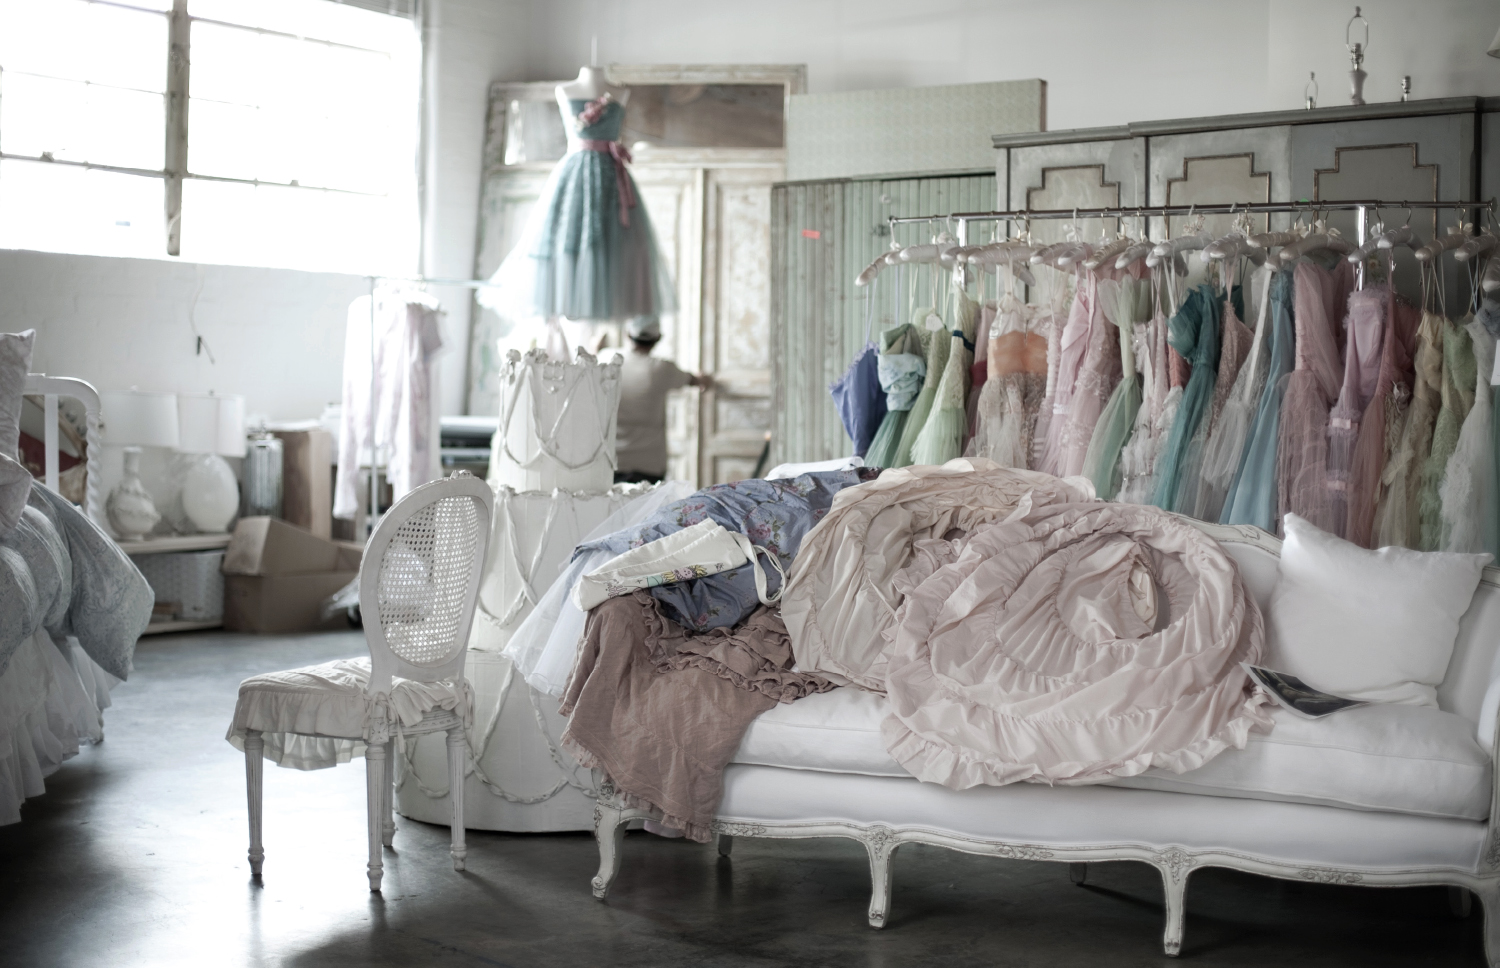 Vintage furniture and prom dresses Ashwell has collected. Photos by Amy Neunsinger and Sarah Pankow